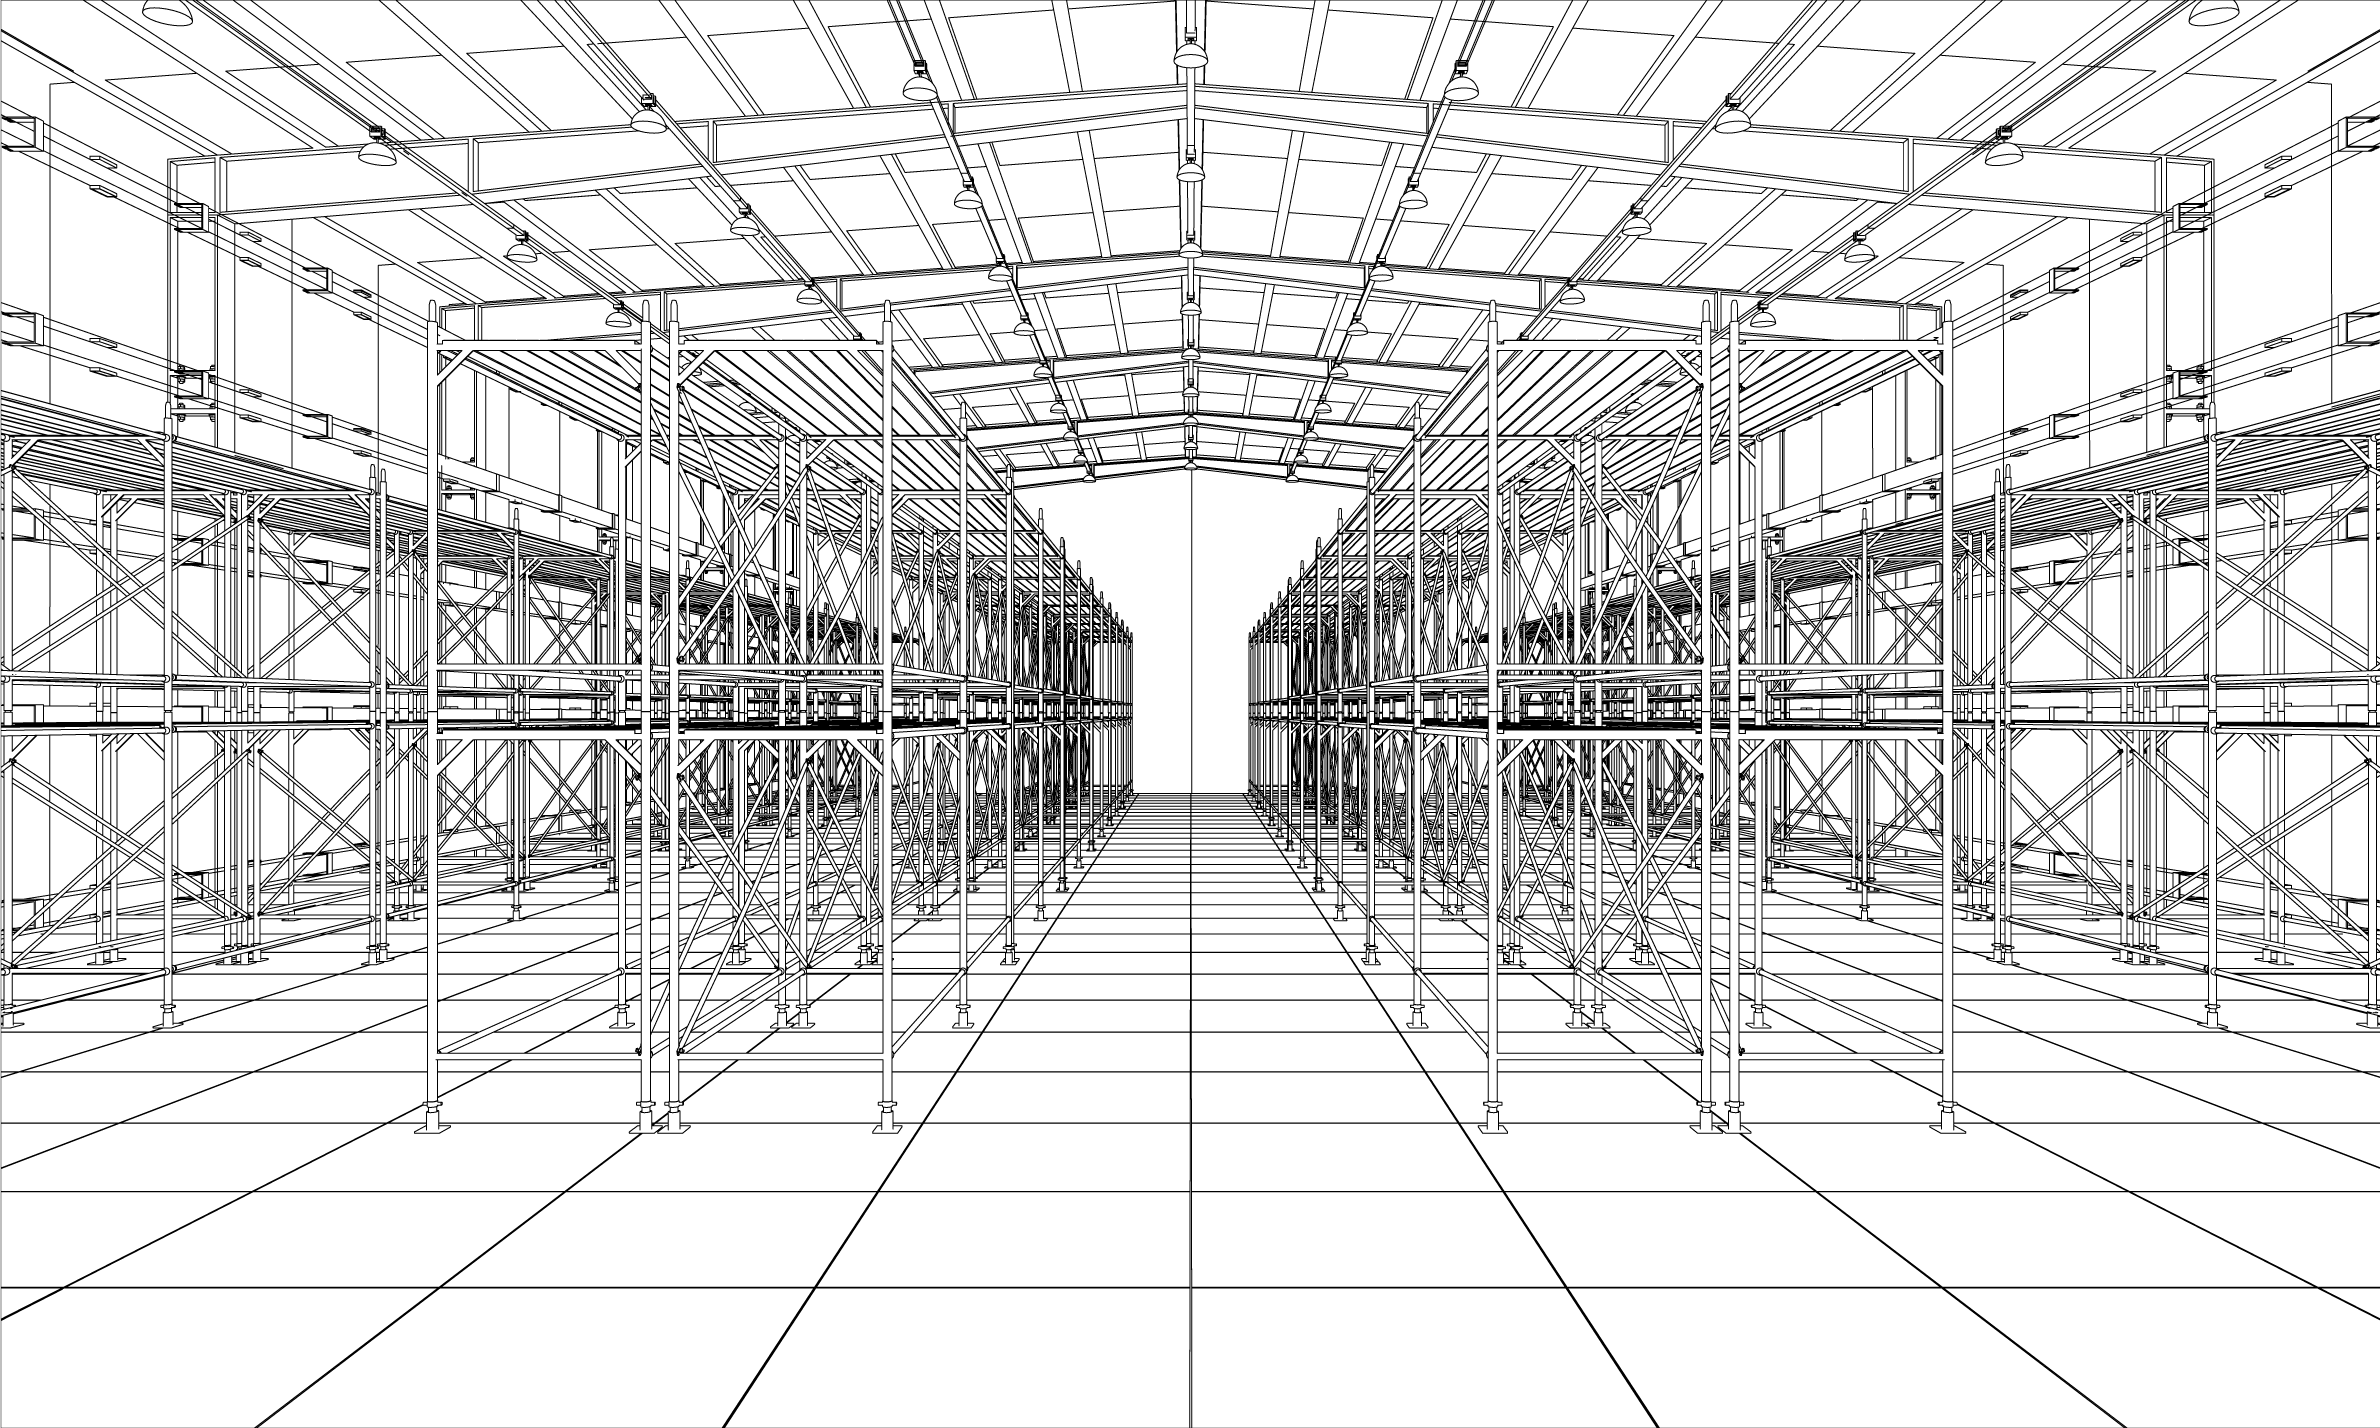 How Multilevel Warehouses are Capitalizing on the End User-February 25, 2021-Lowney Architecture